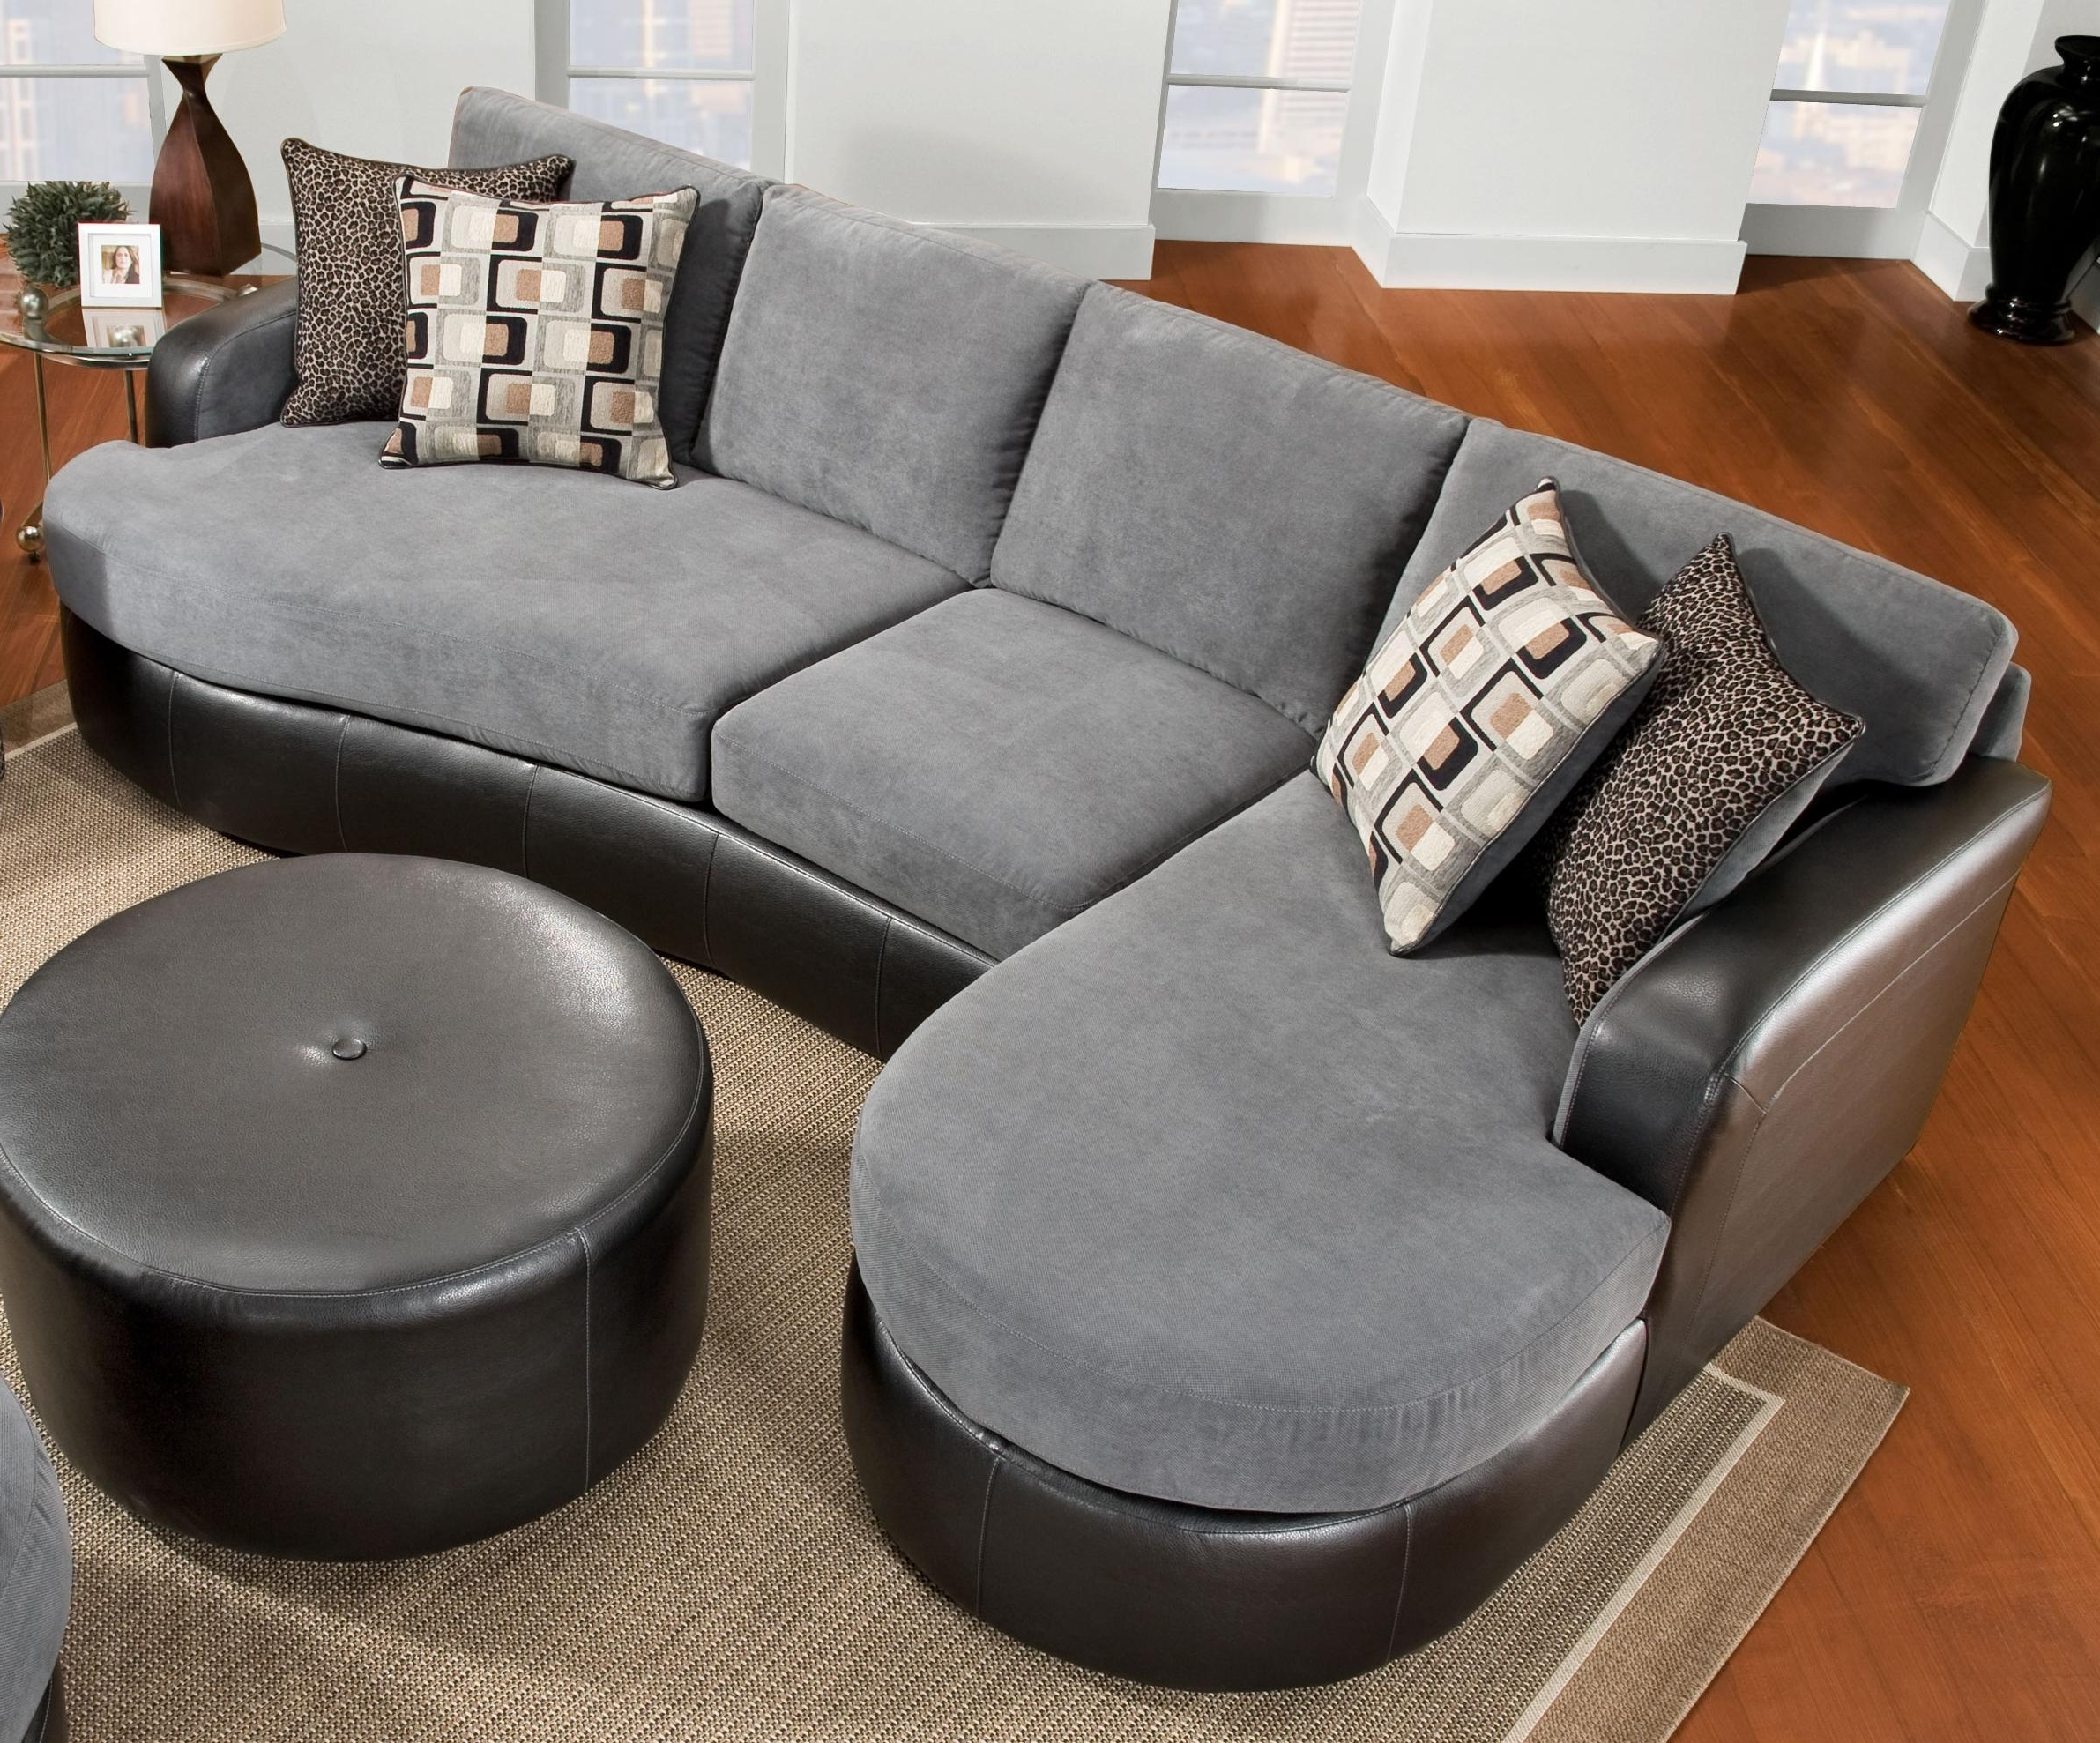 Elegant Chic Gray Velvet And Black Leather Sectional Sofa With F With Fashionable Sofas With Chaise And Ottoman (View 4 of 20)